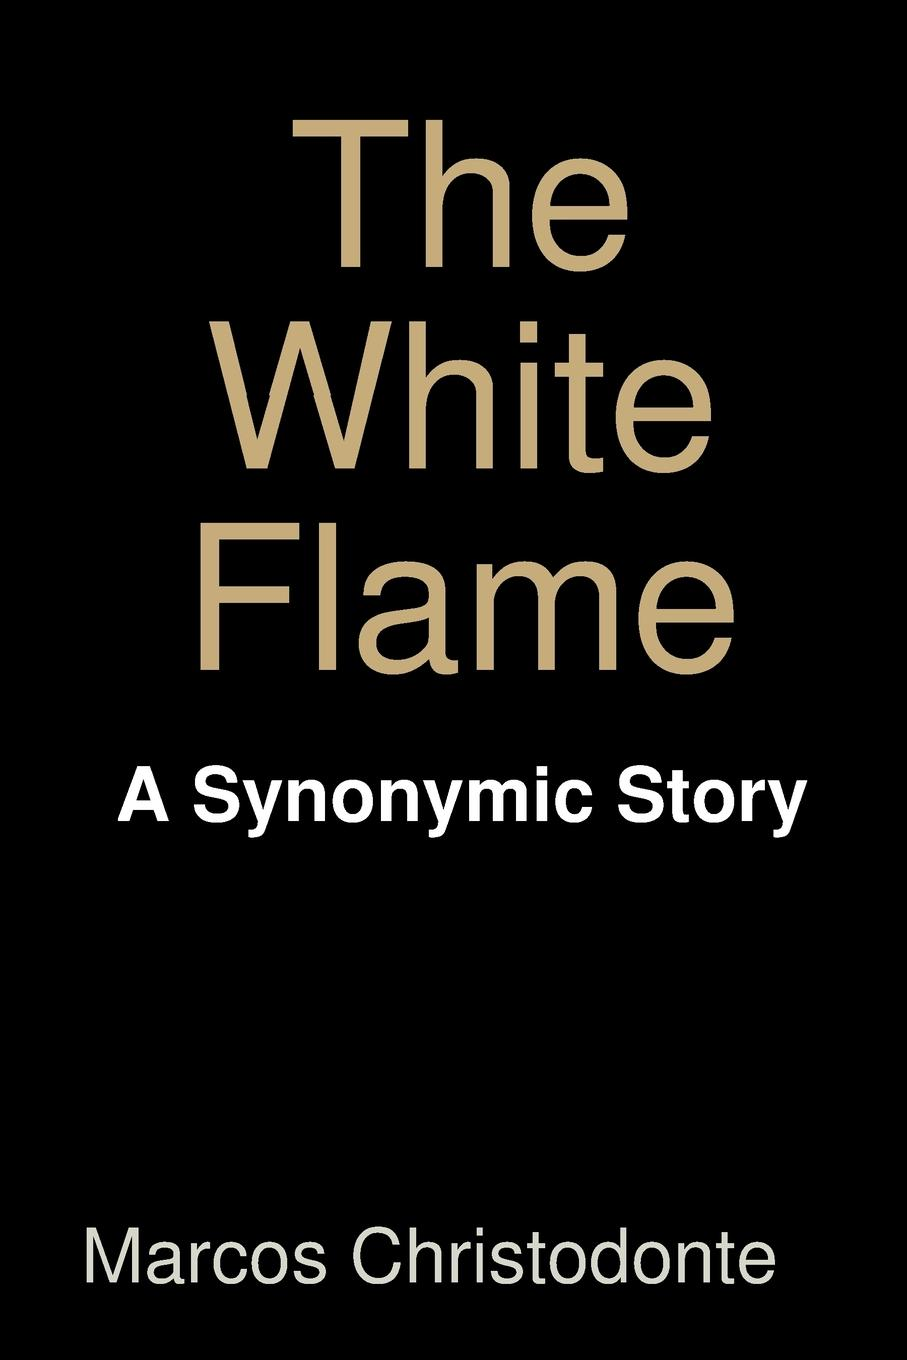 marcos christodonte The White Flame chinese idioms about sheep and their related stories